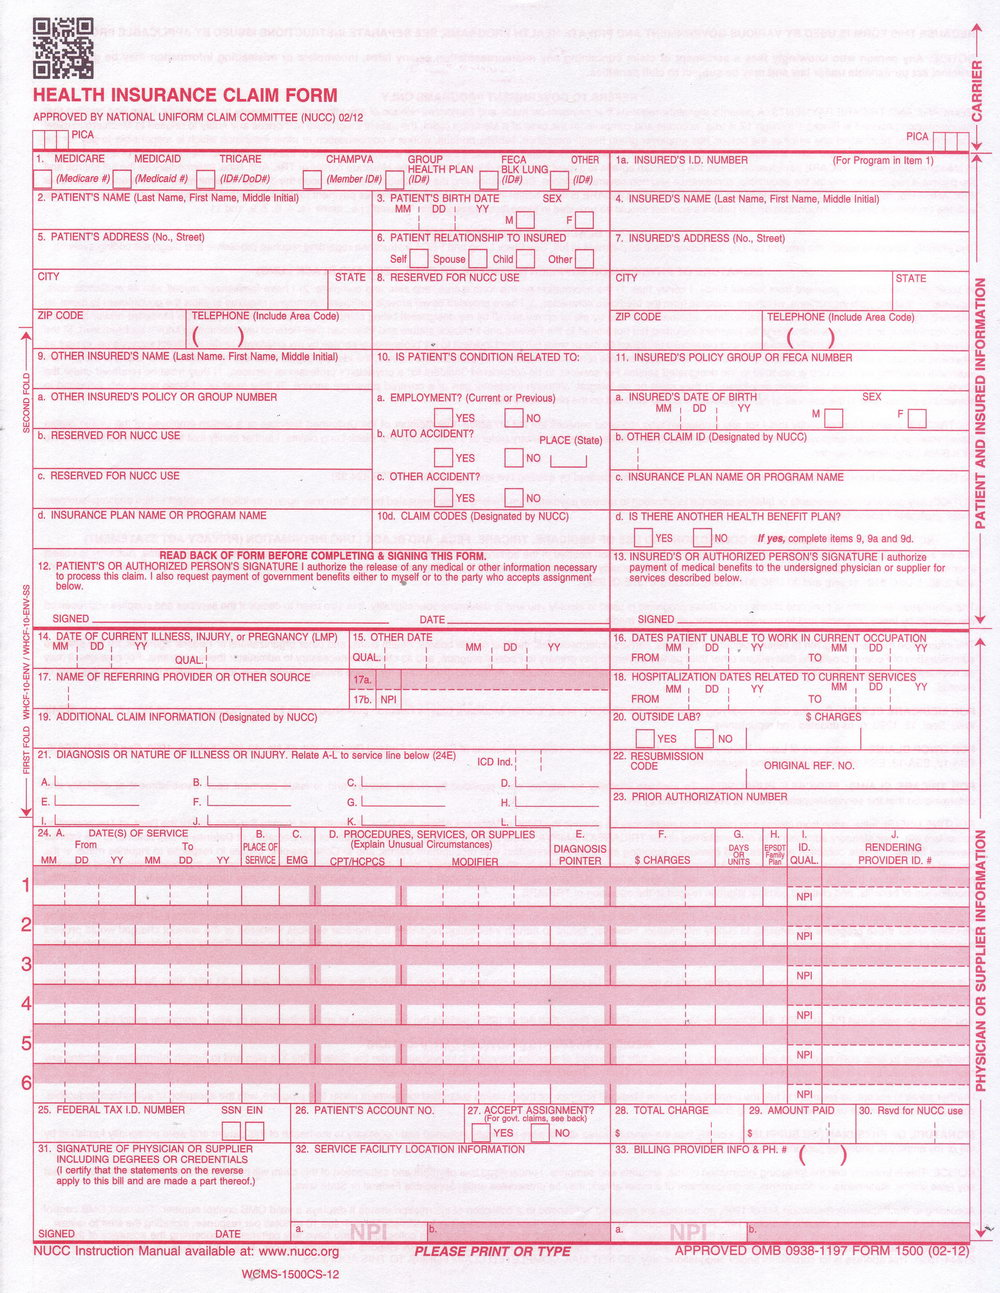 Cms 1500 Form Download Free